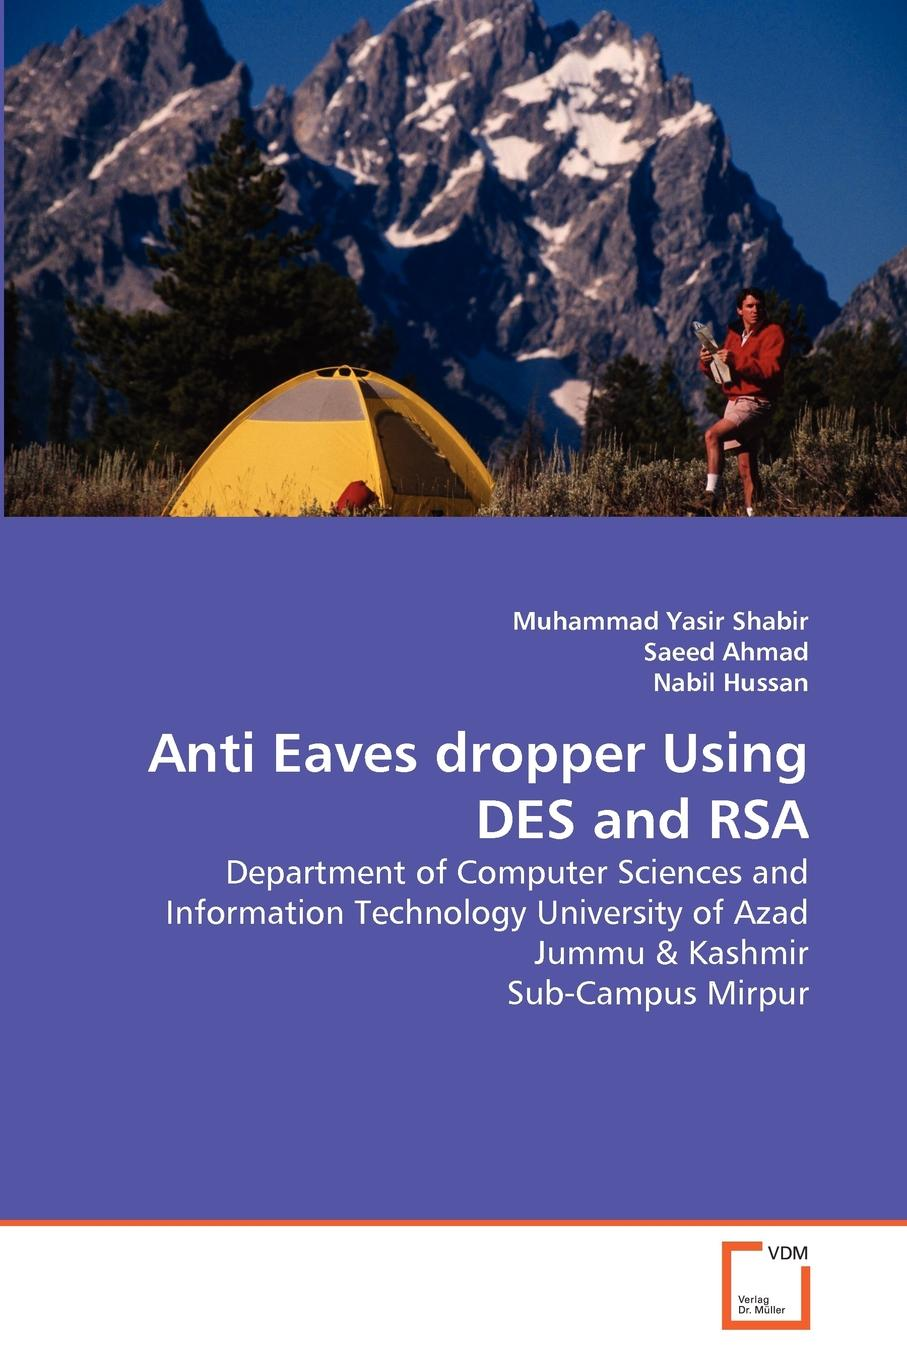 Muhammad Yasir Shabir, Saeed Ahmad, Nabil Hussan Anti Eaves dropper Using DES and RSA